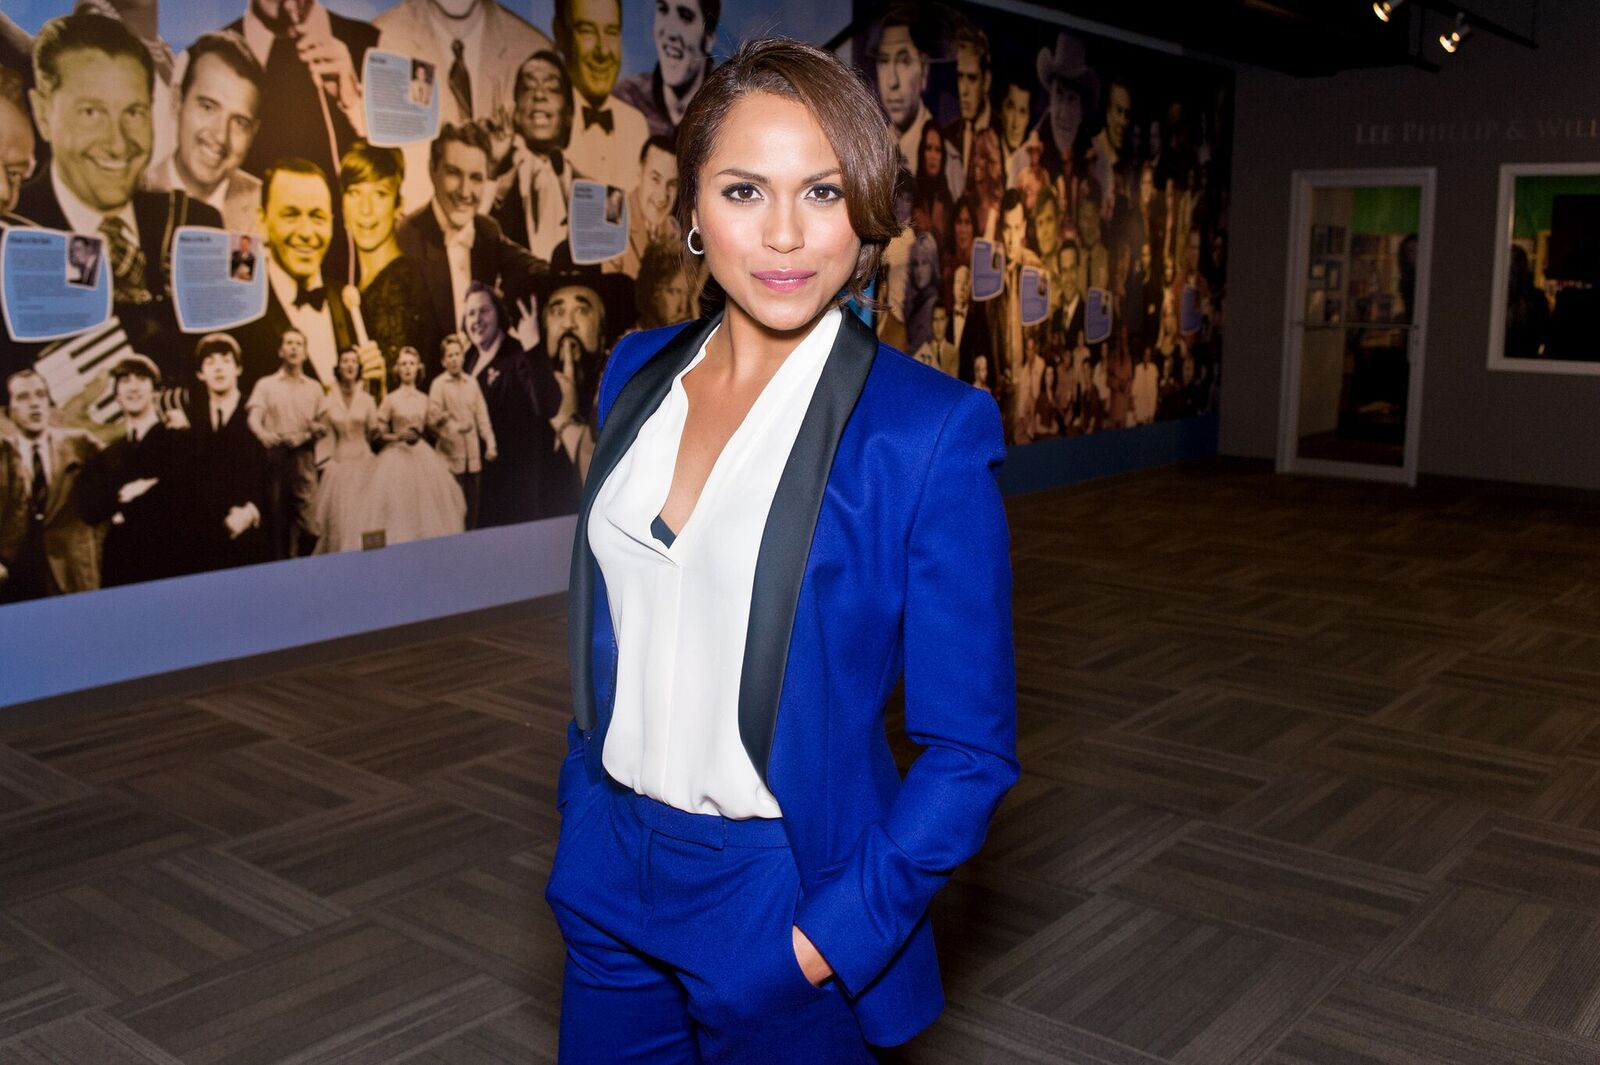 Monica Raymund appears in advance of a panel discussion at the Museum of Broadcast Communications in Chicago, IL on February 19, 2014 | Photo: Getty Images